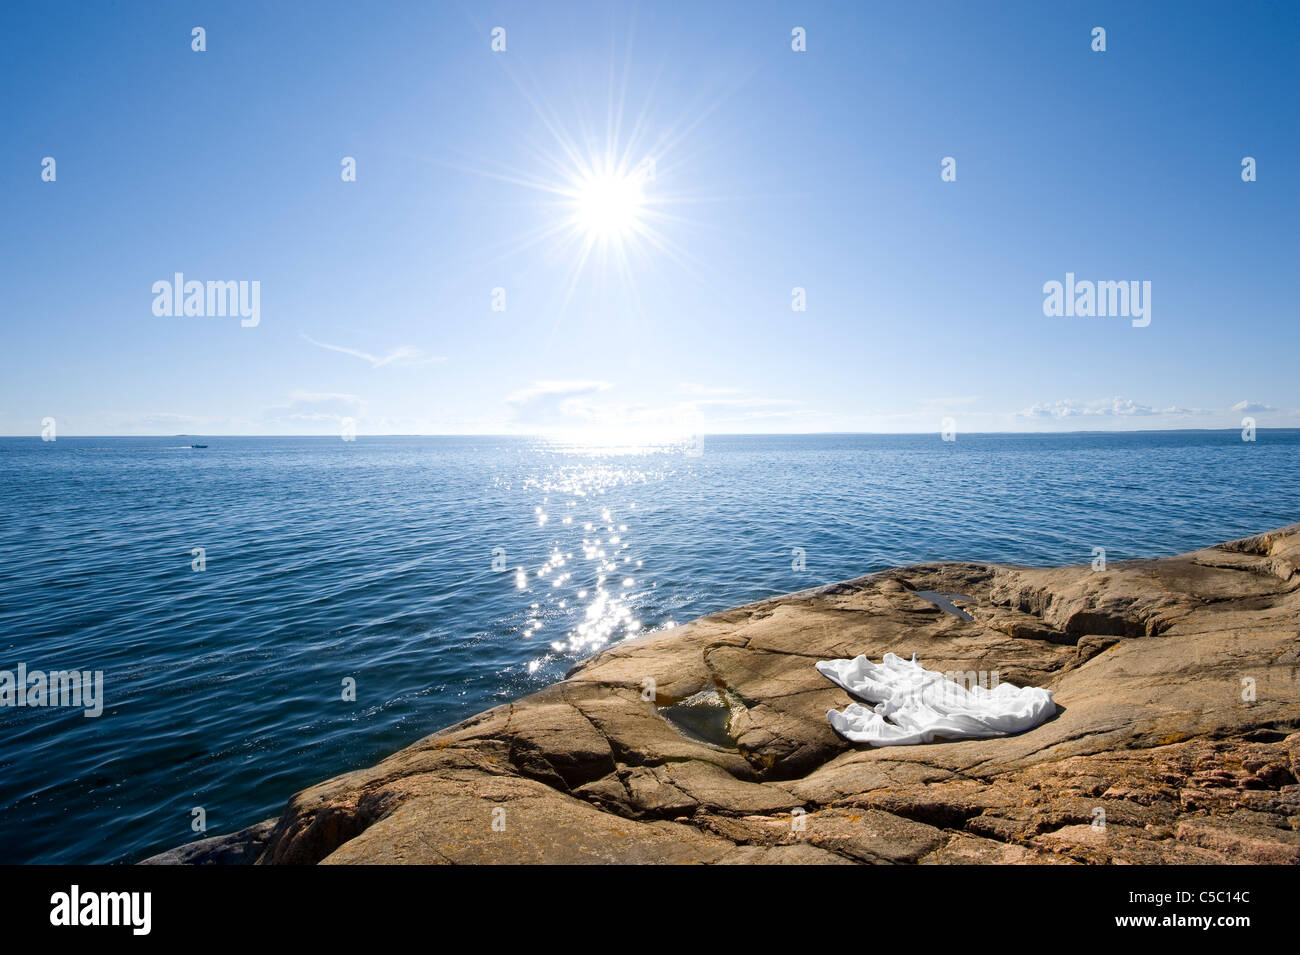 Cliff by the scenic and peaceful sea on a sunny day - Stock Image